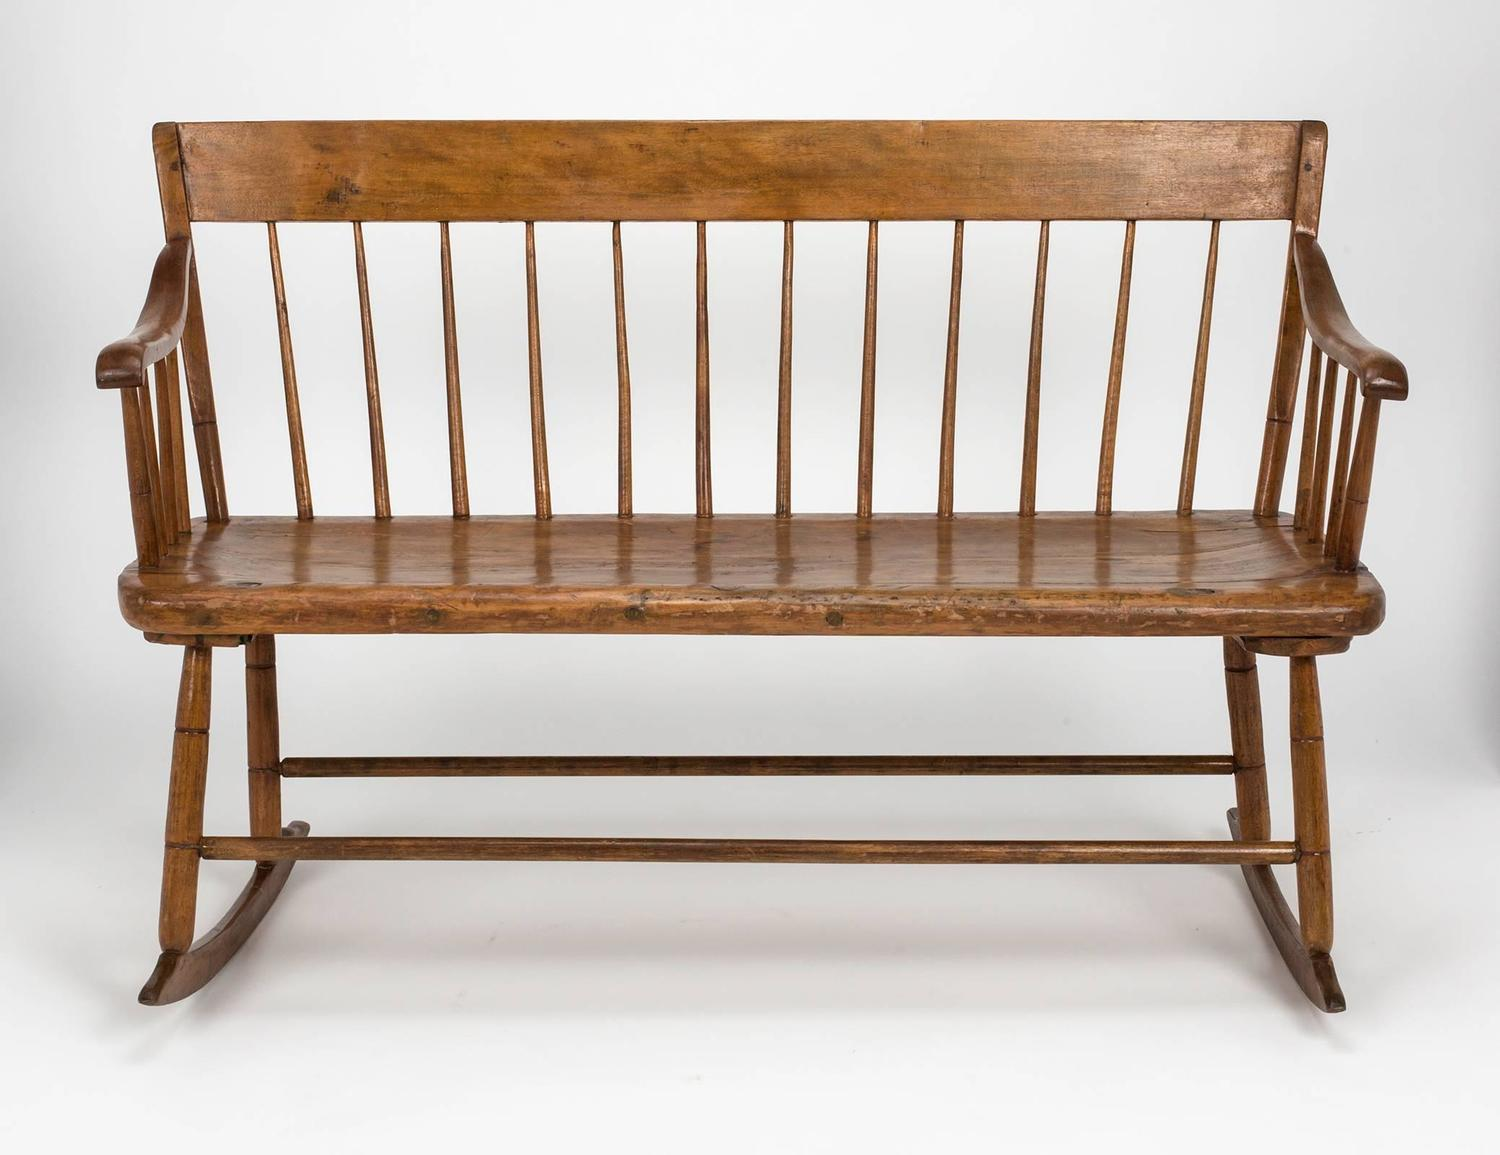 rocking chair height counter chairs with arms early american primitive bench at 1stdibs